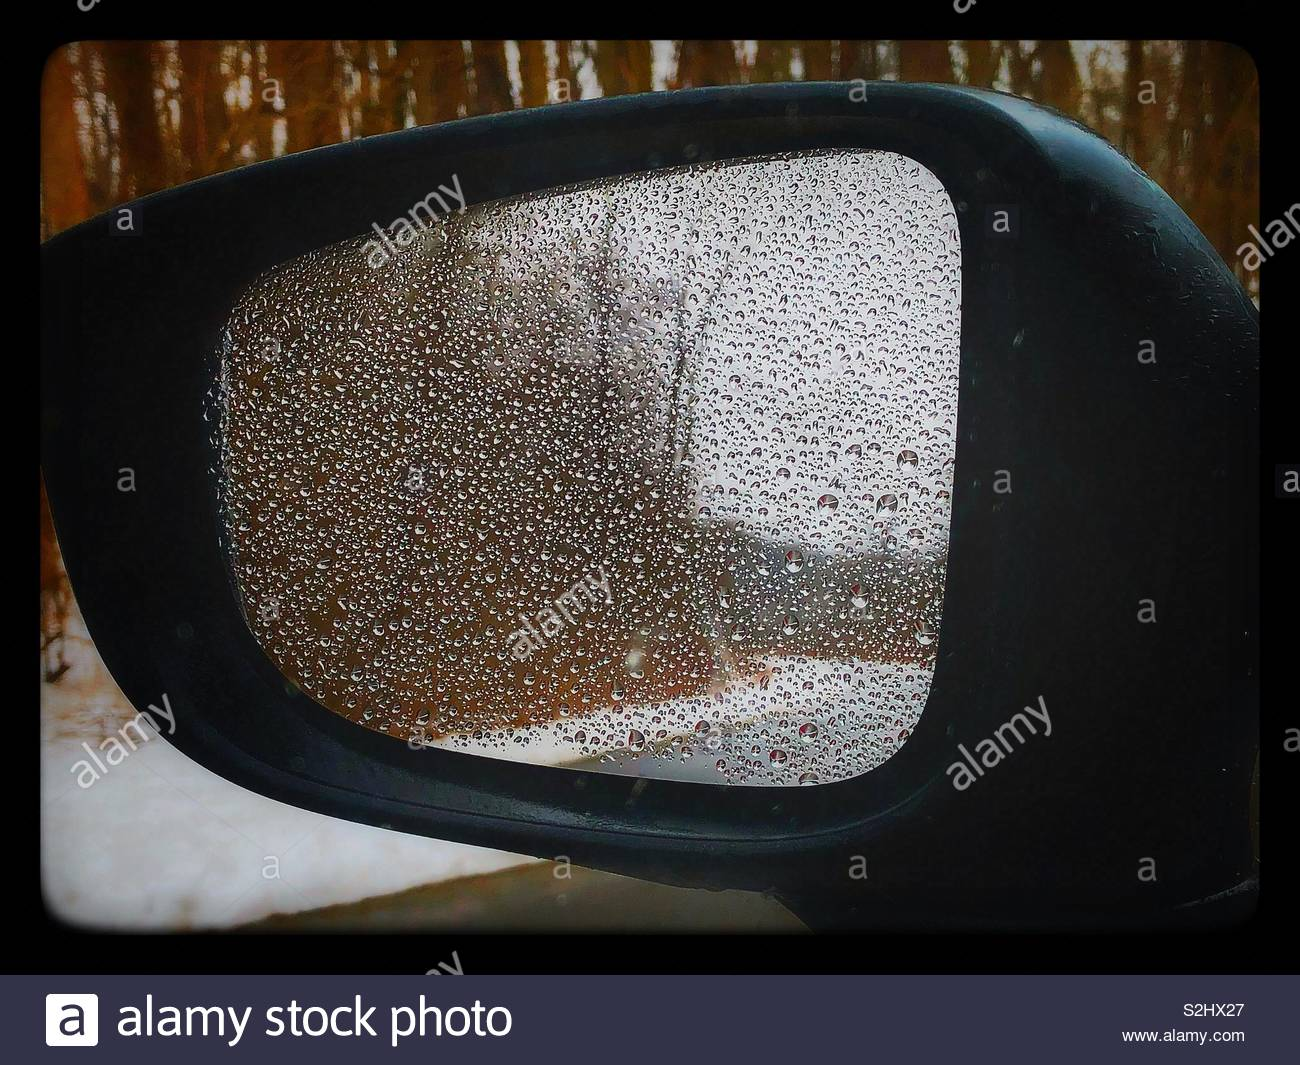 Winter in the rear view mirror - Stock Image